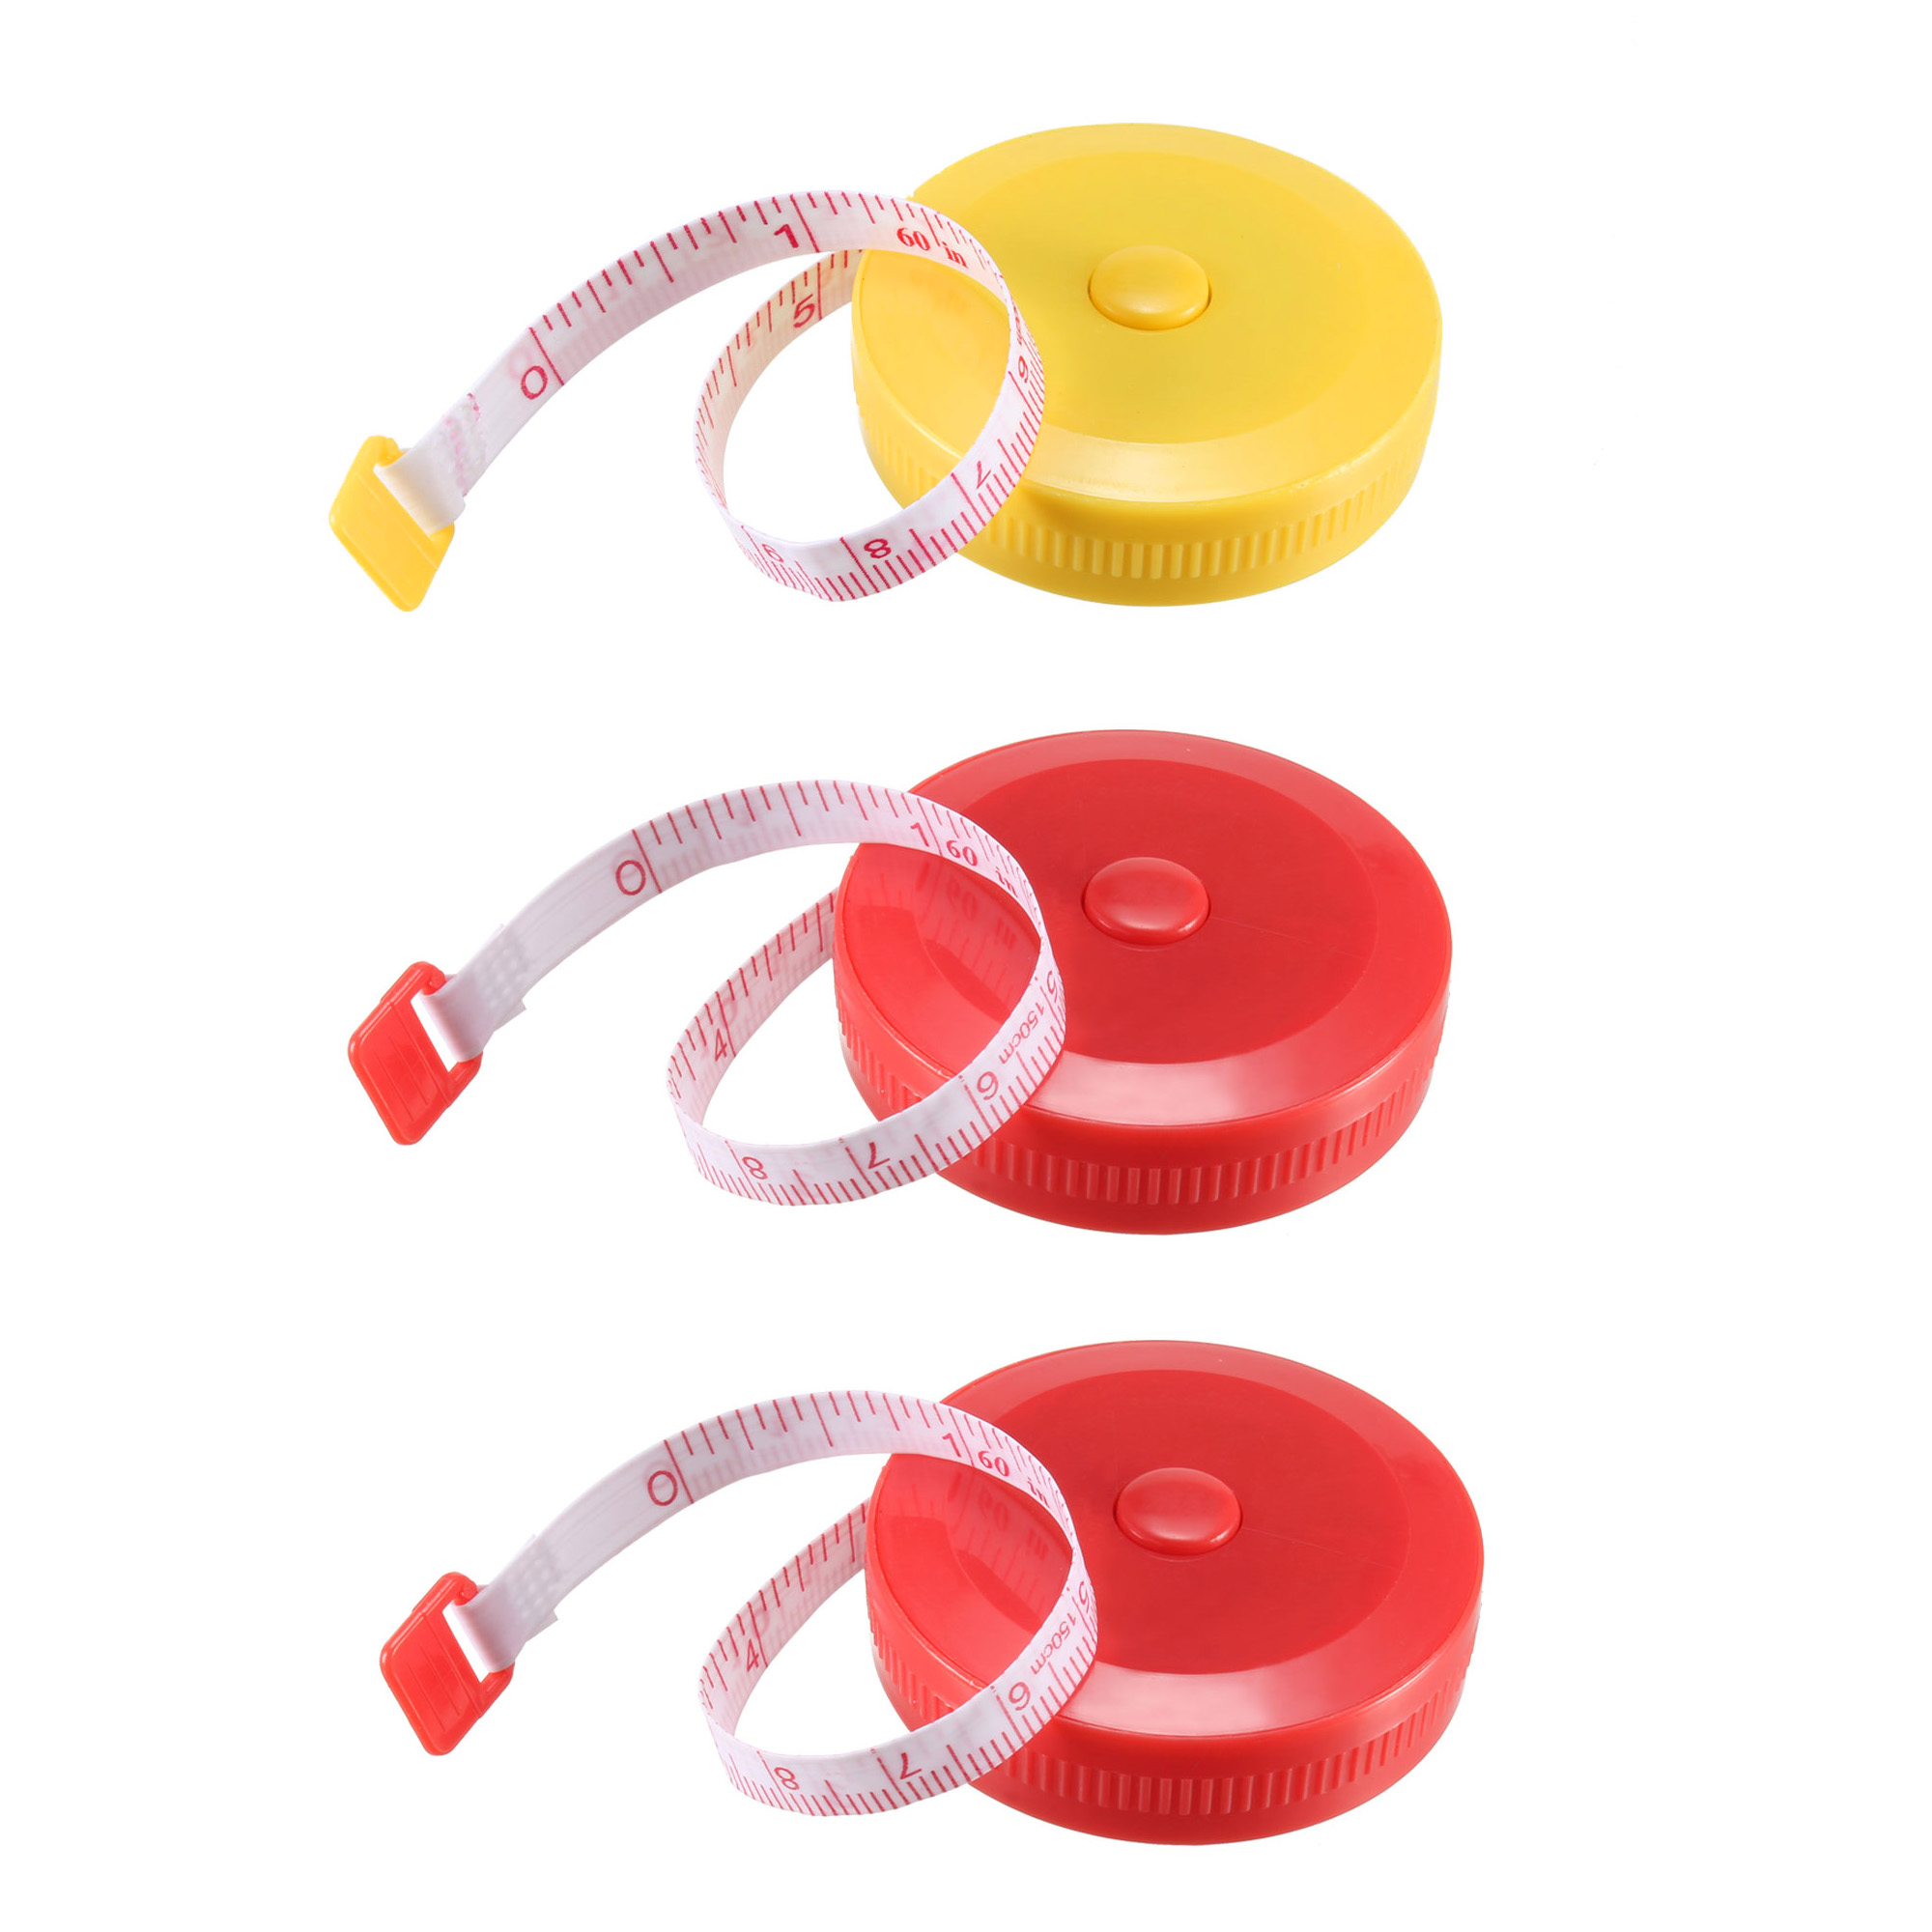 Cloth Tape Measure For Body 60 Inch Metric Inch Measuring